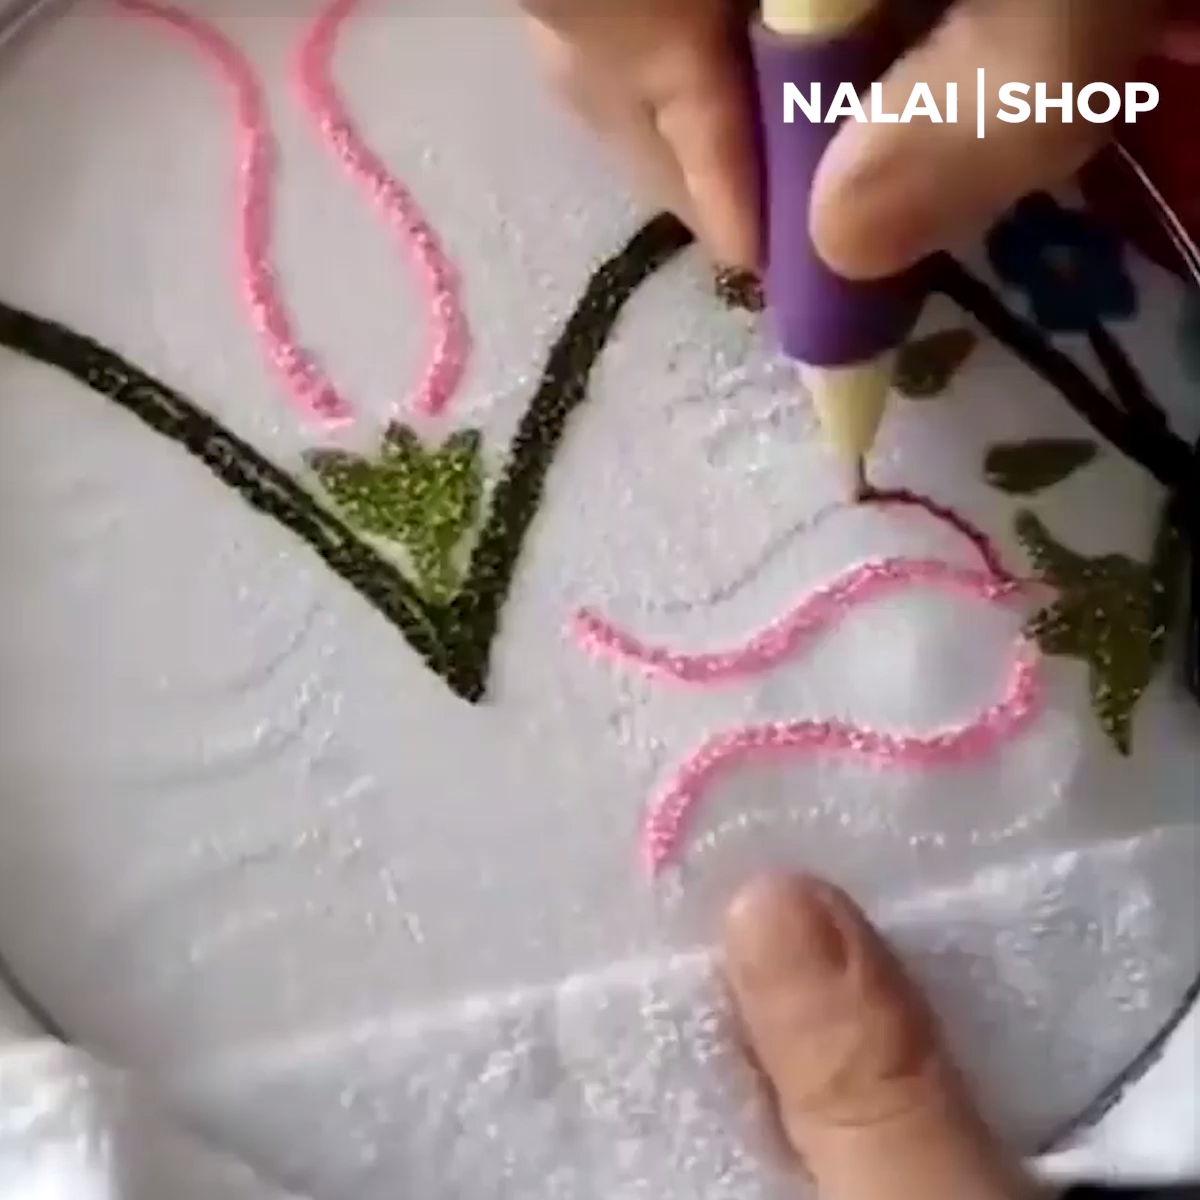 Magic Embroidery Pen #uniquecrafts